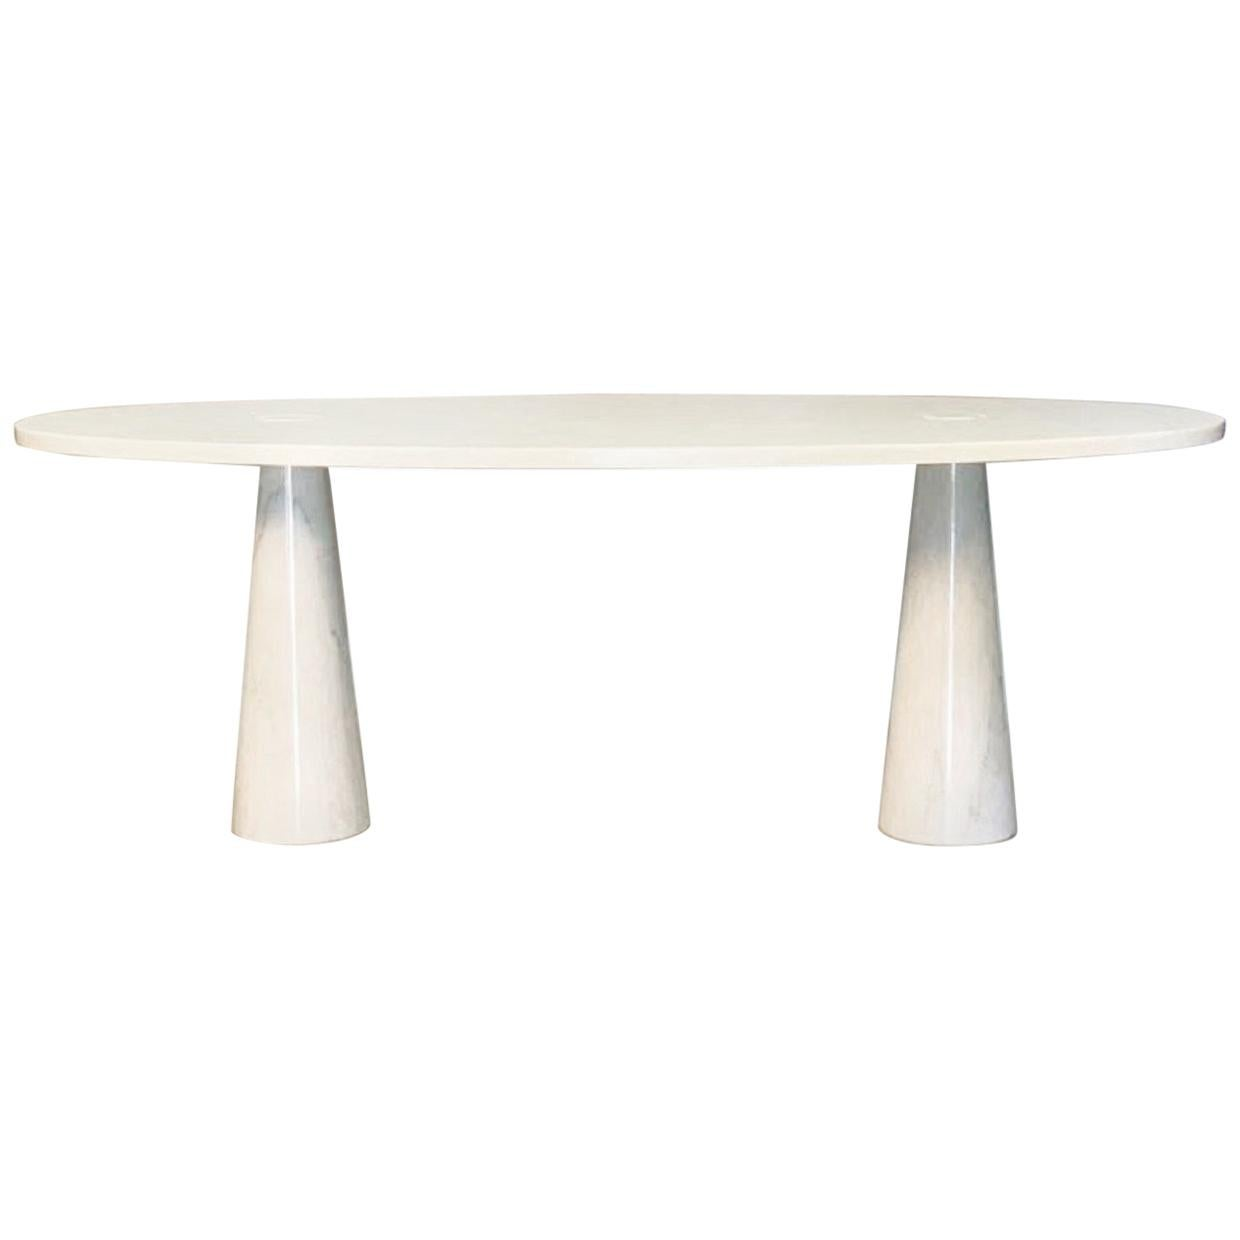 Mid-Century Modern White Dining table in Carrara marble by Angelo Mangiarotti